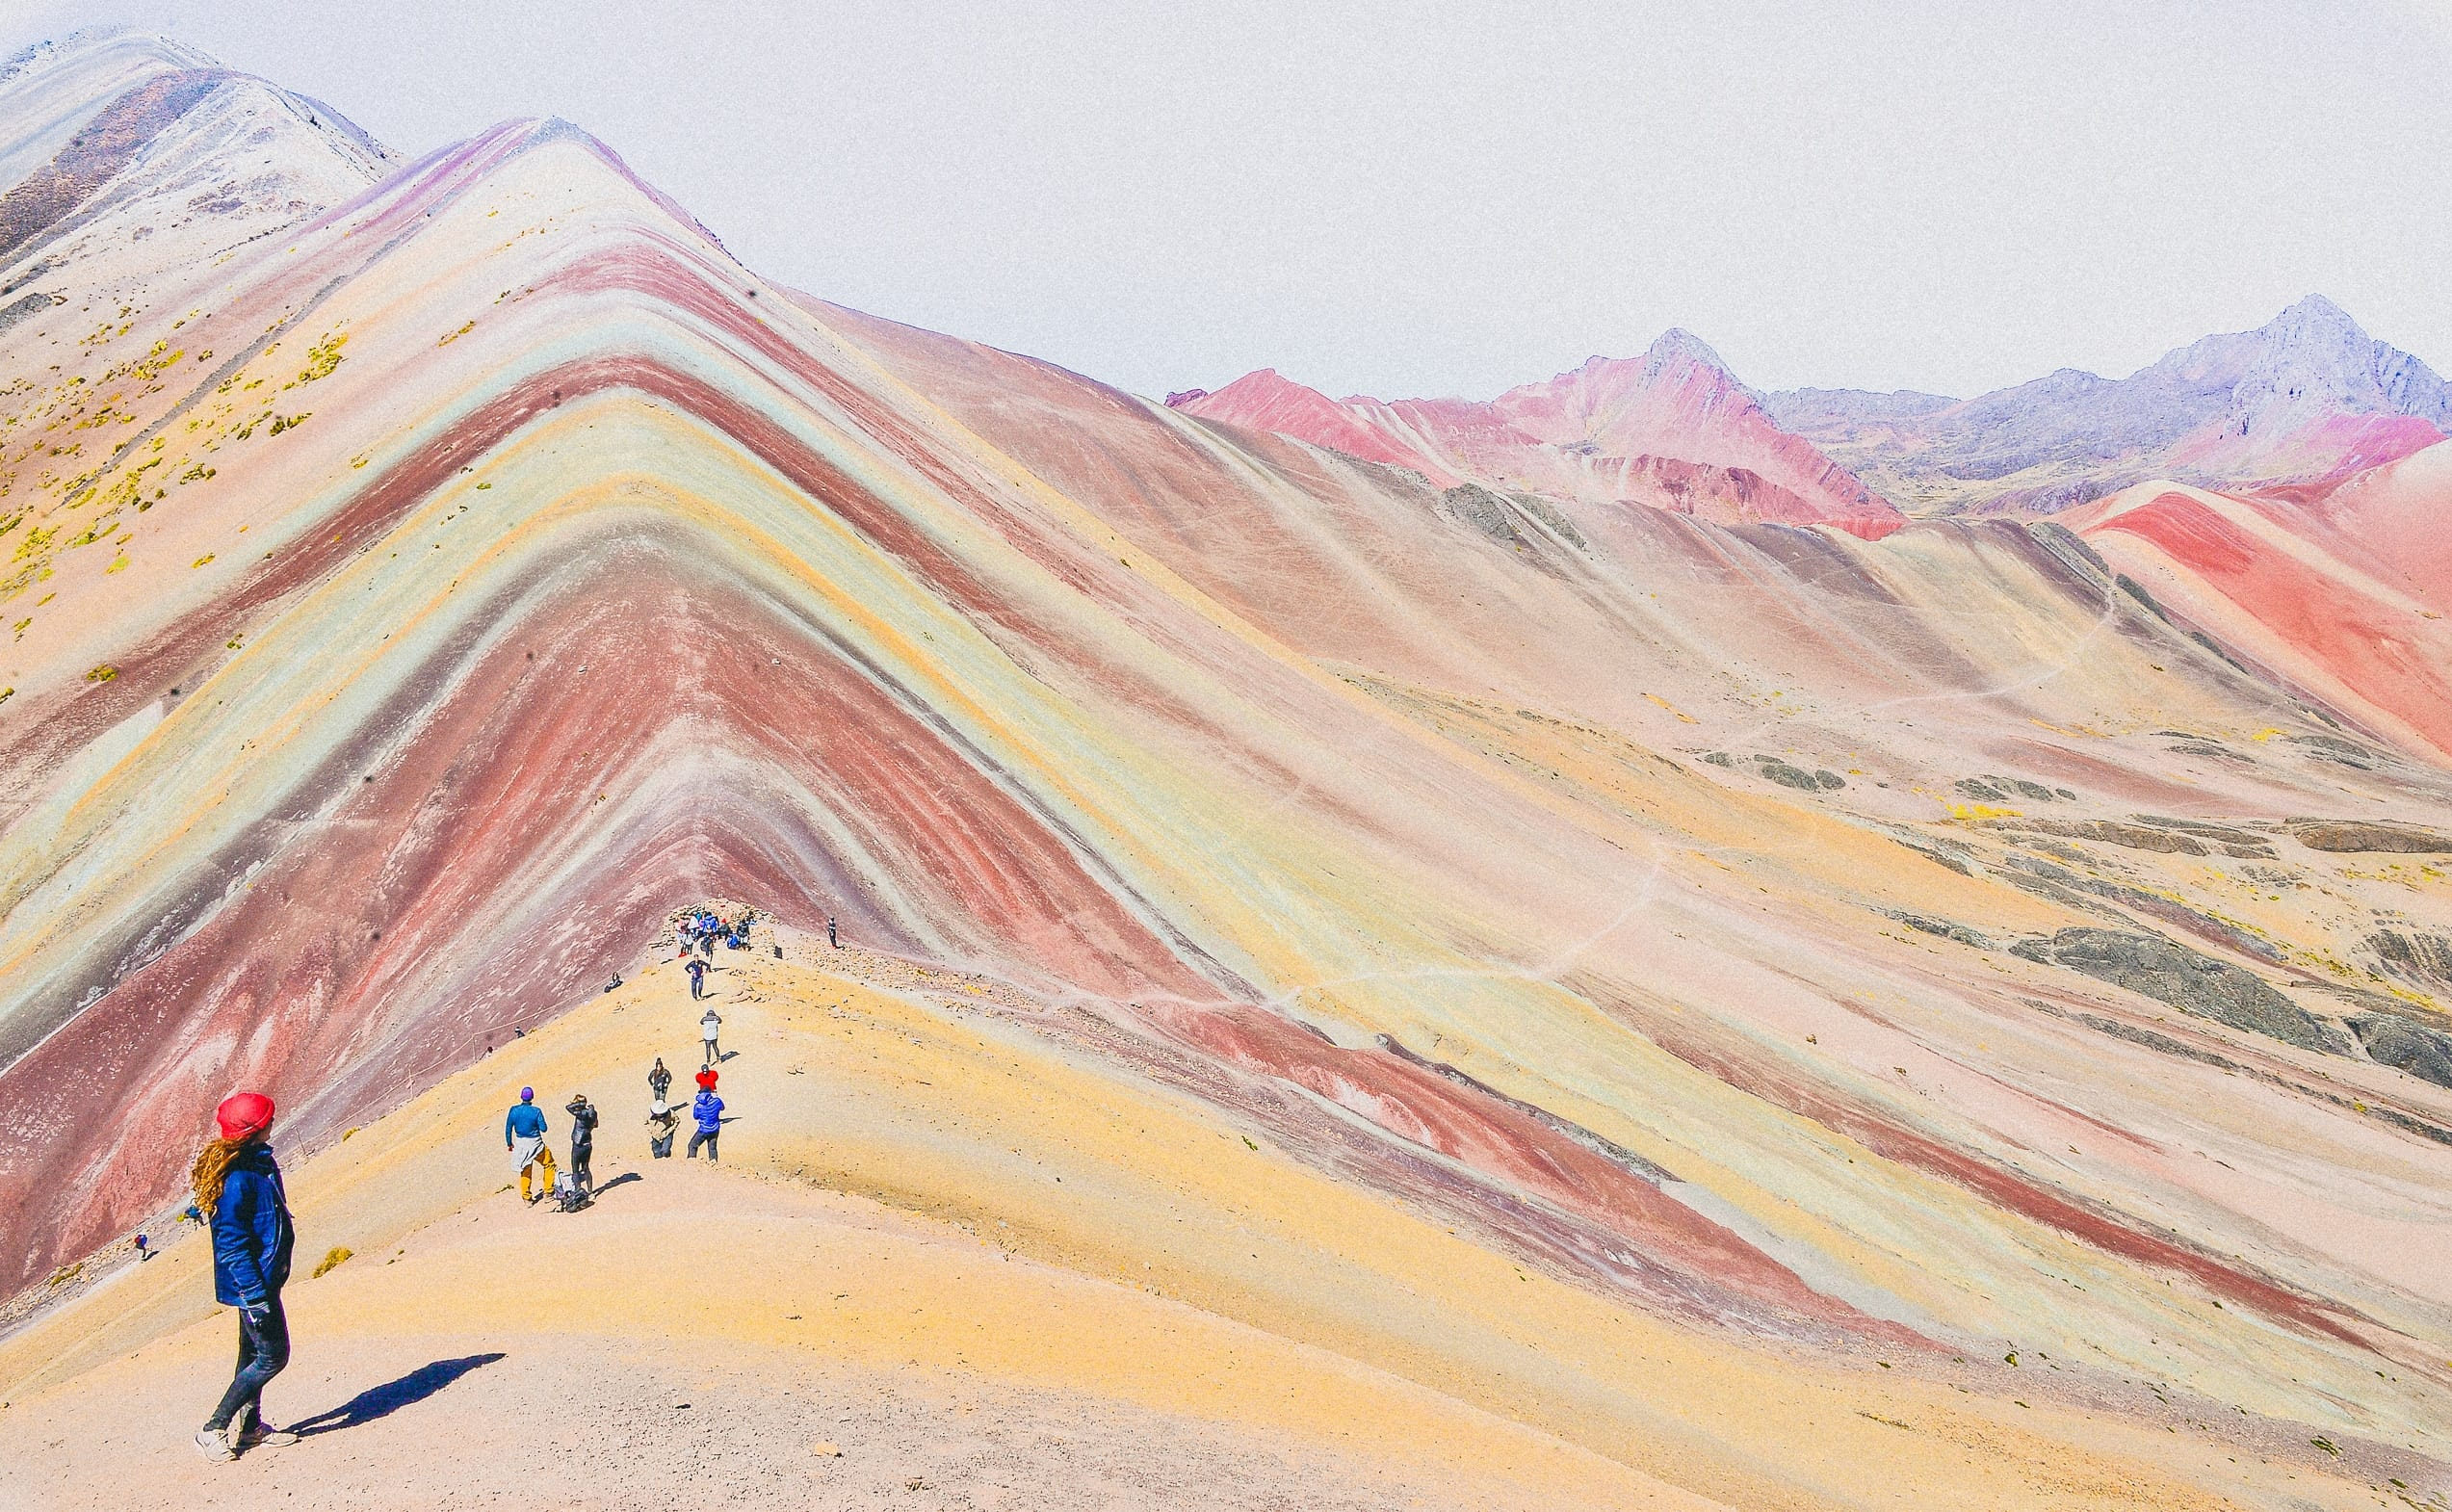 peru - nomads hiking rainbow mountains